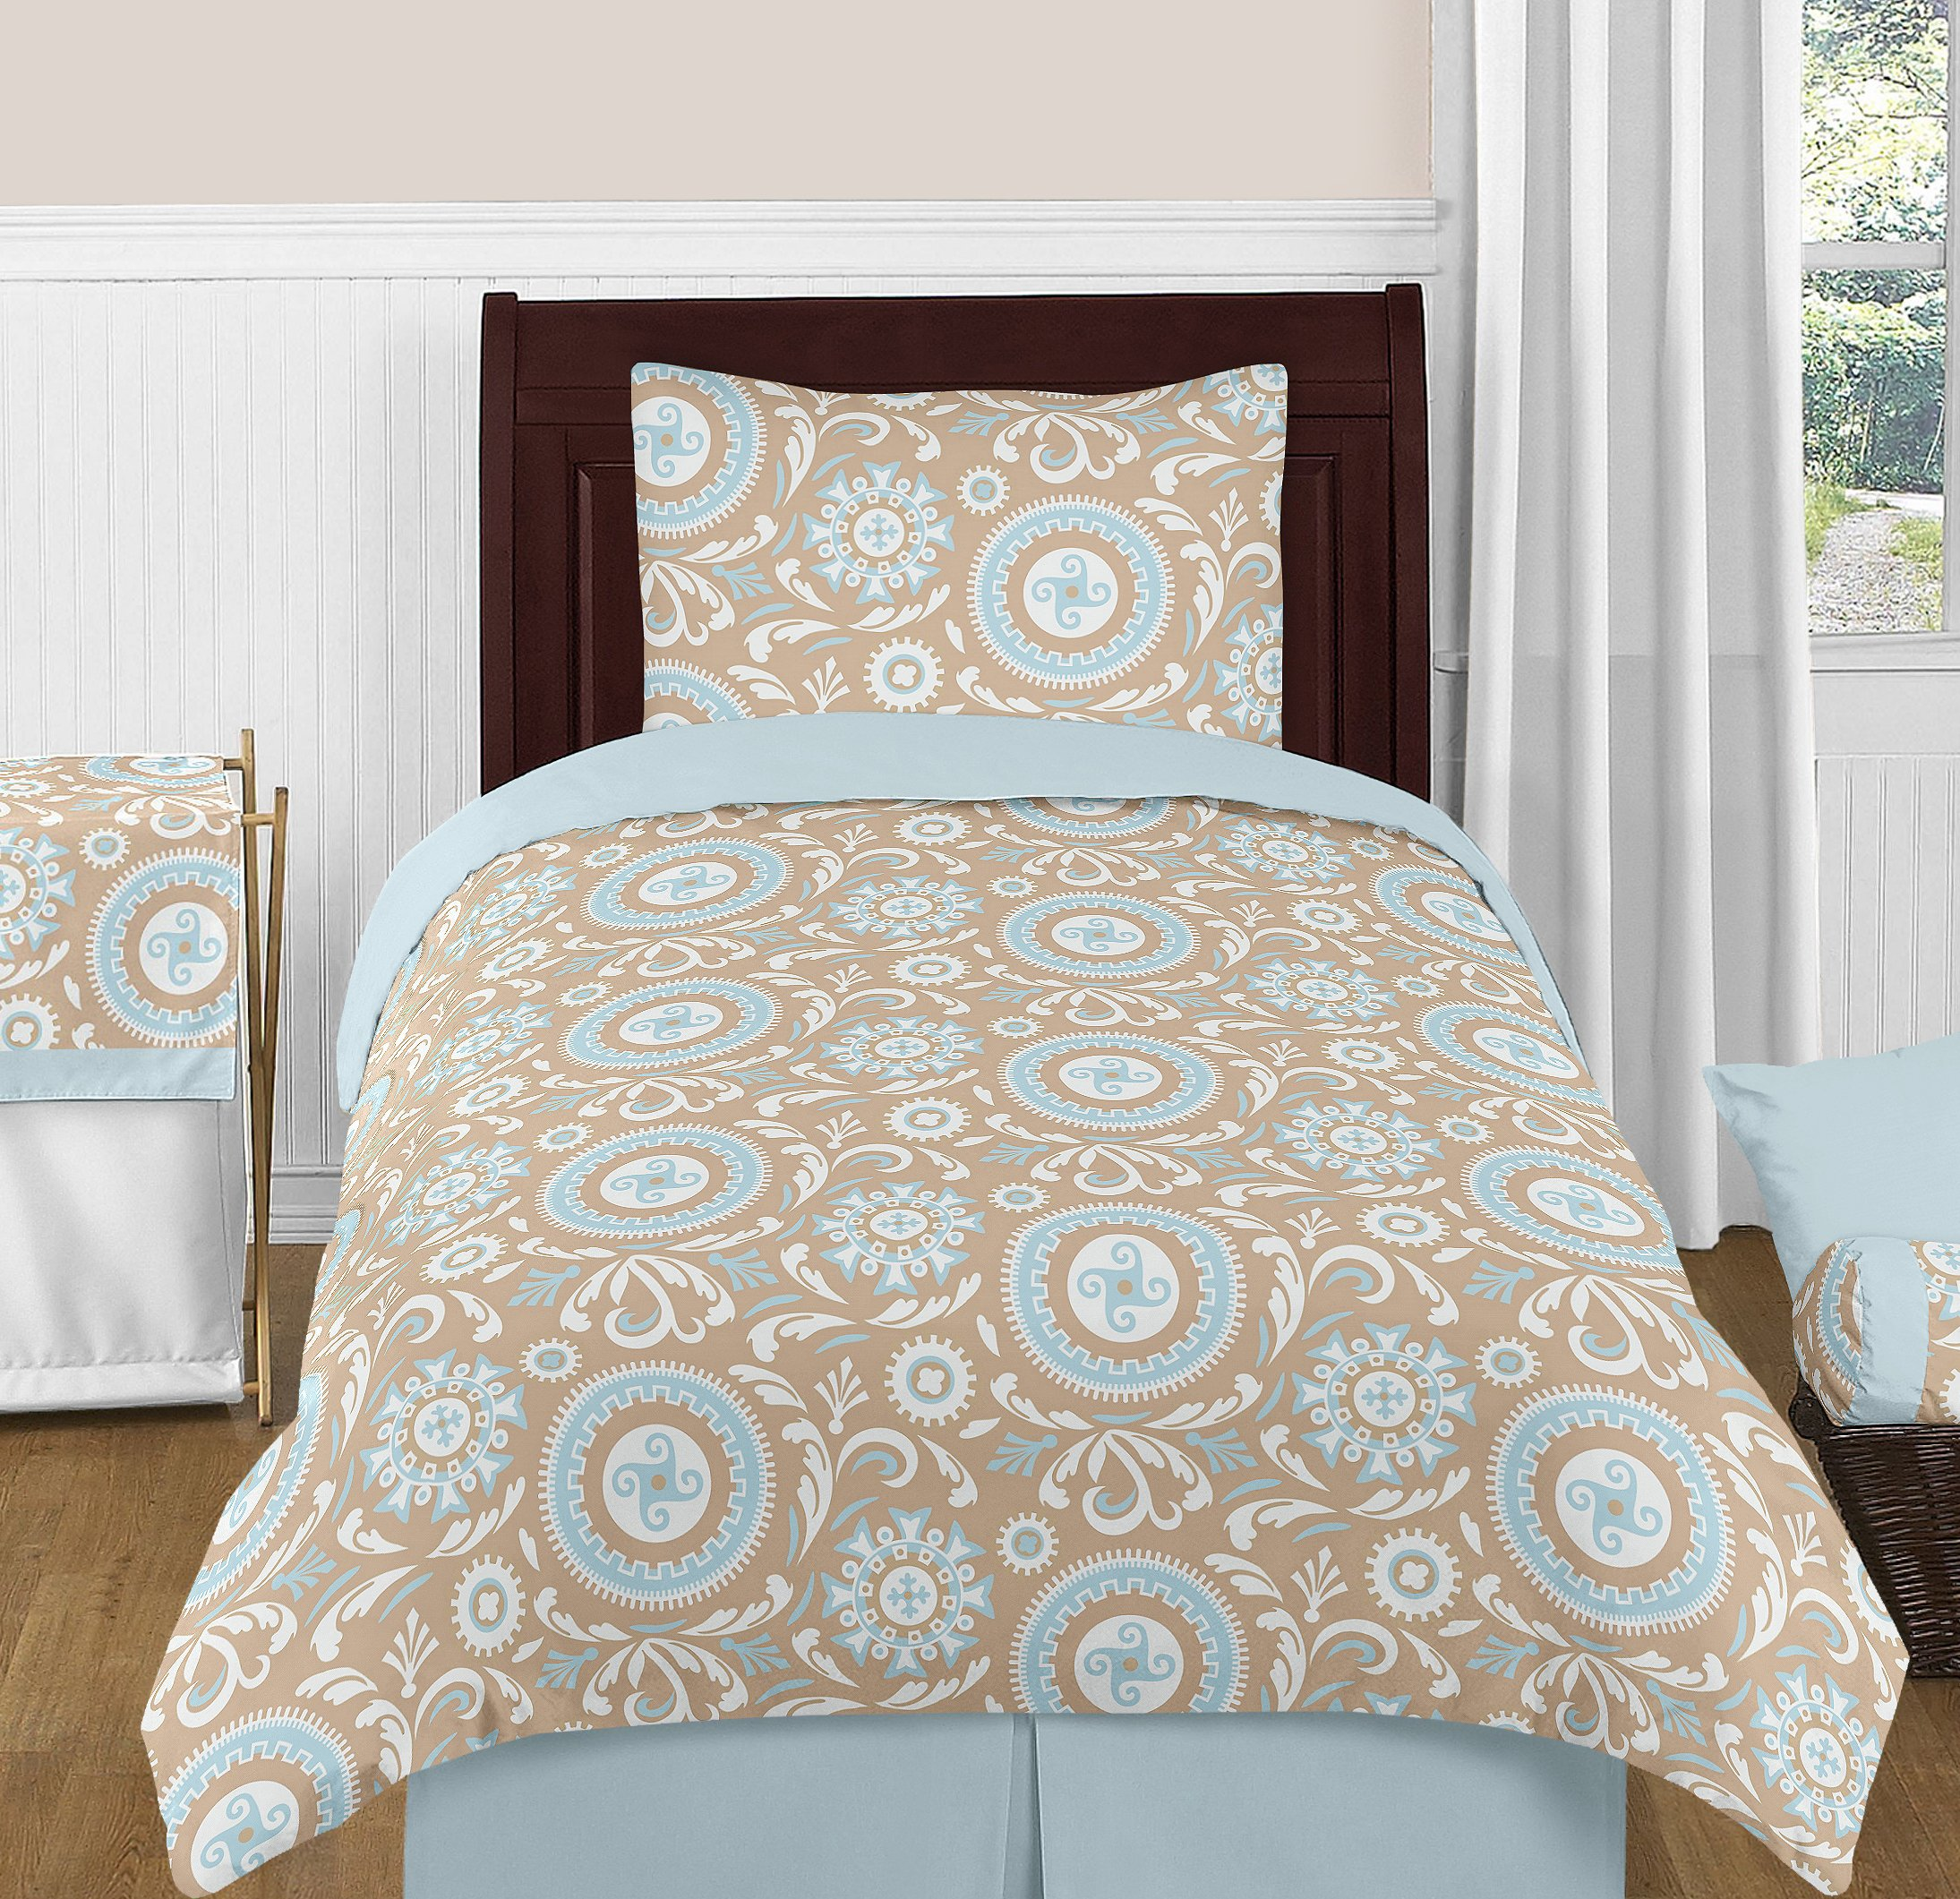 Sweet Jojo Designs 4-Piece Blue and Taupe Hayden Childrens and Kids Bedding Girl or Boy Twin Set